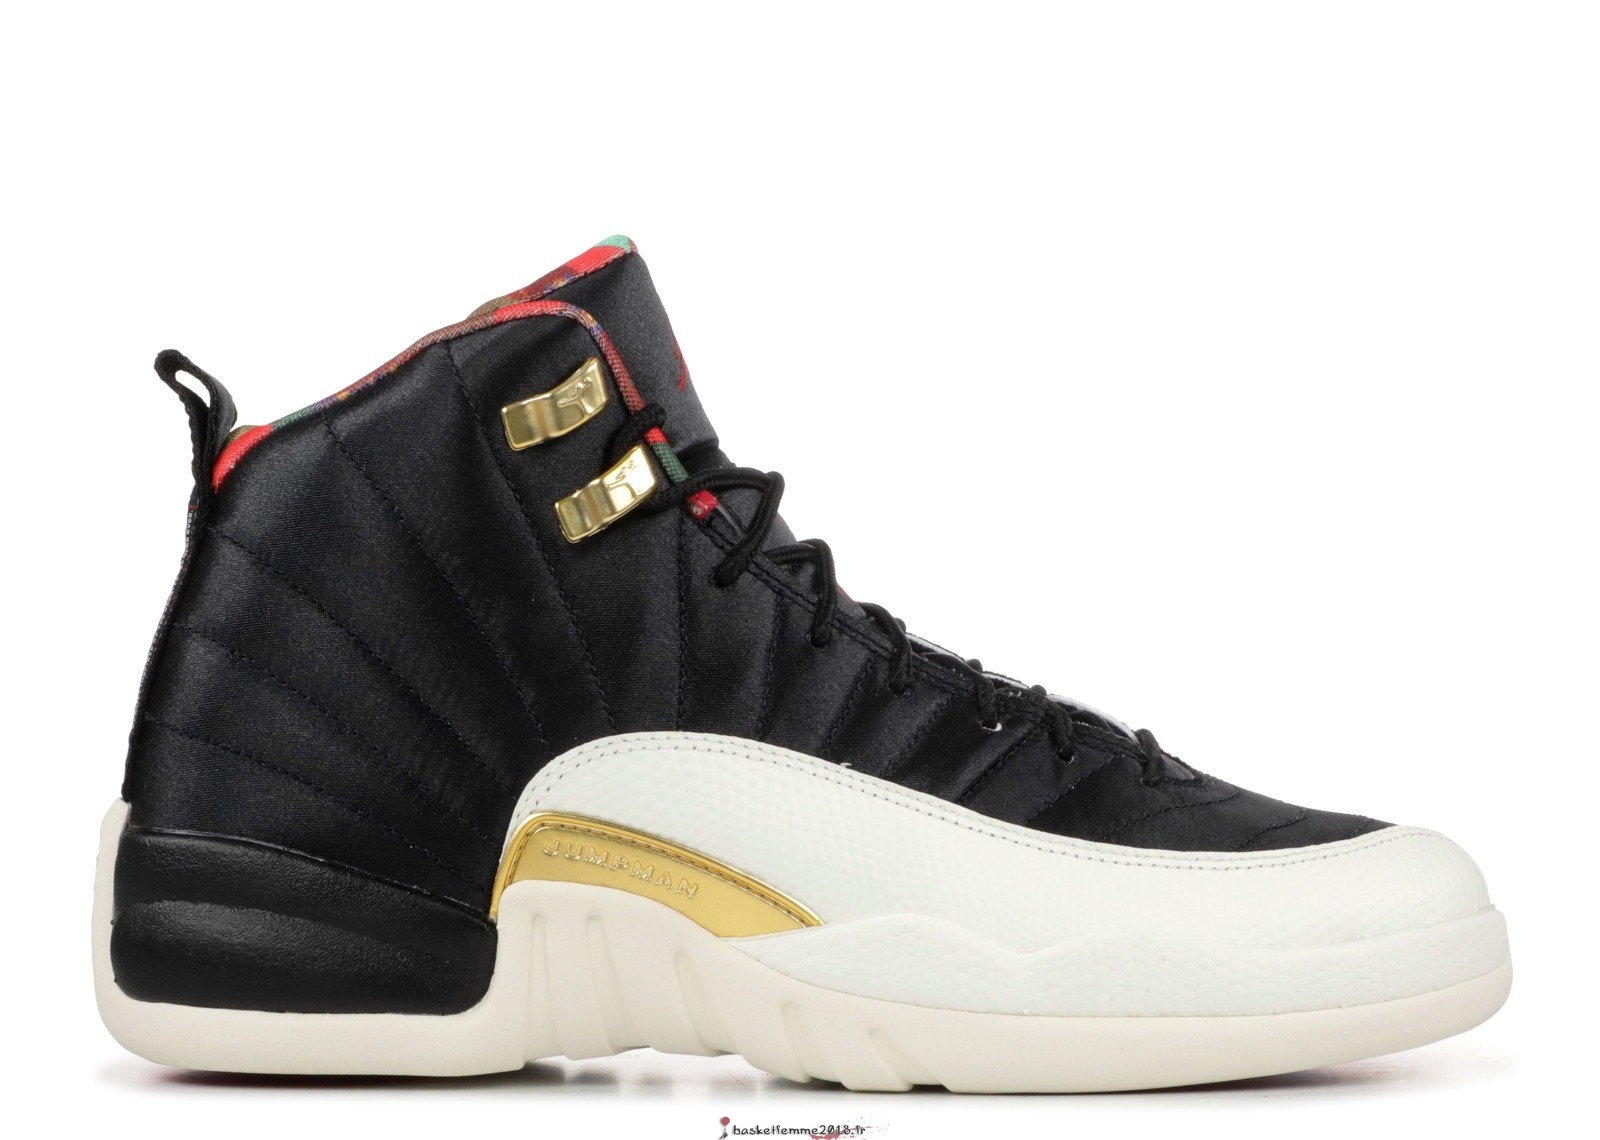 Air Jordan 12 Retro Cny (GS) Chinese New Year Noir (BQ6497-006) Chaussure de Basket